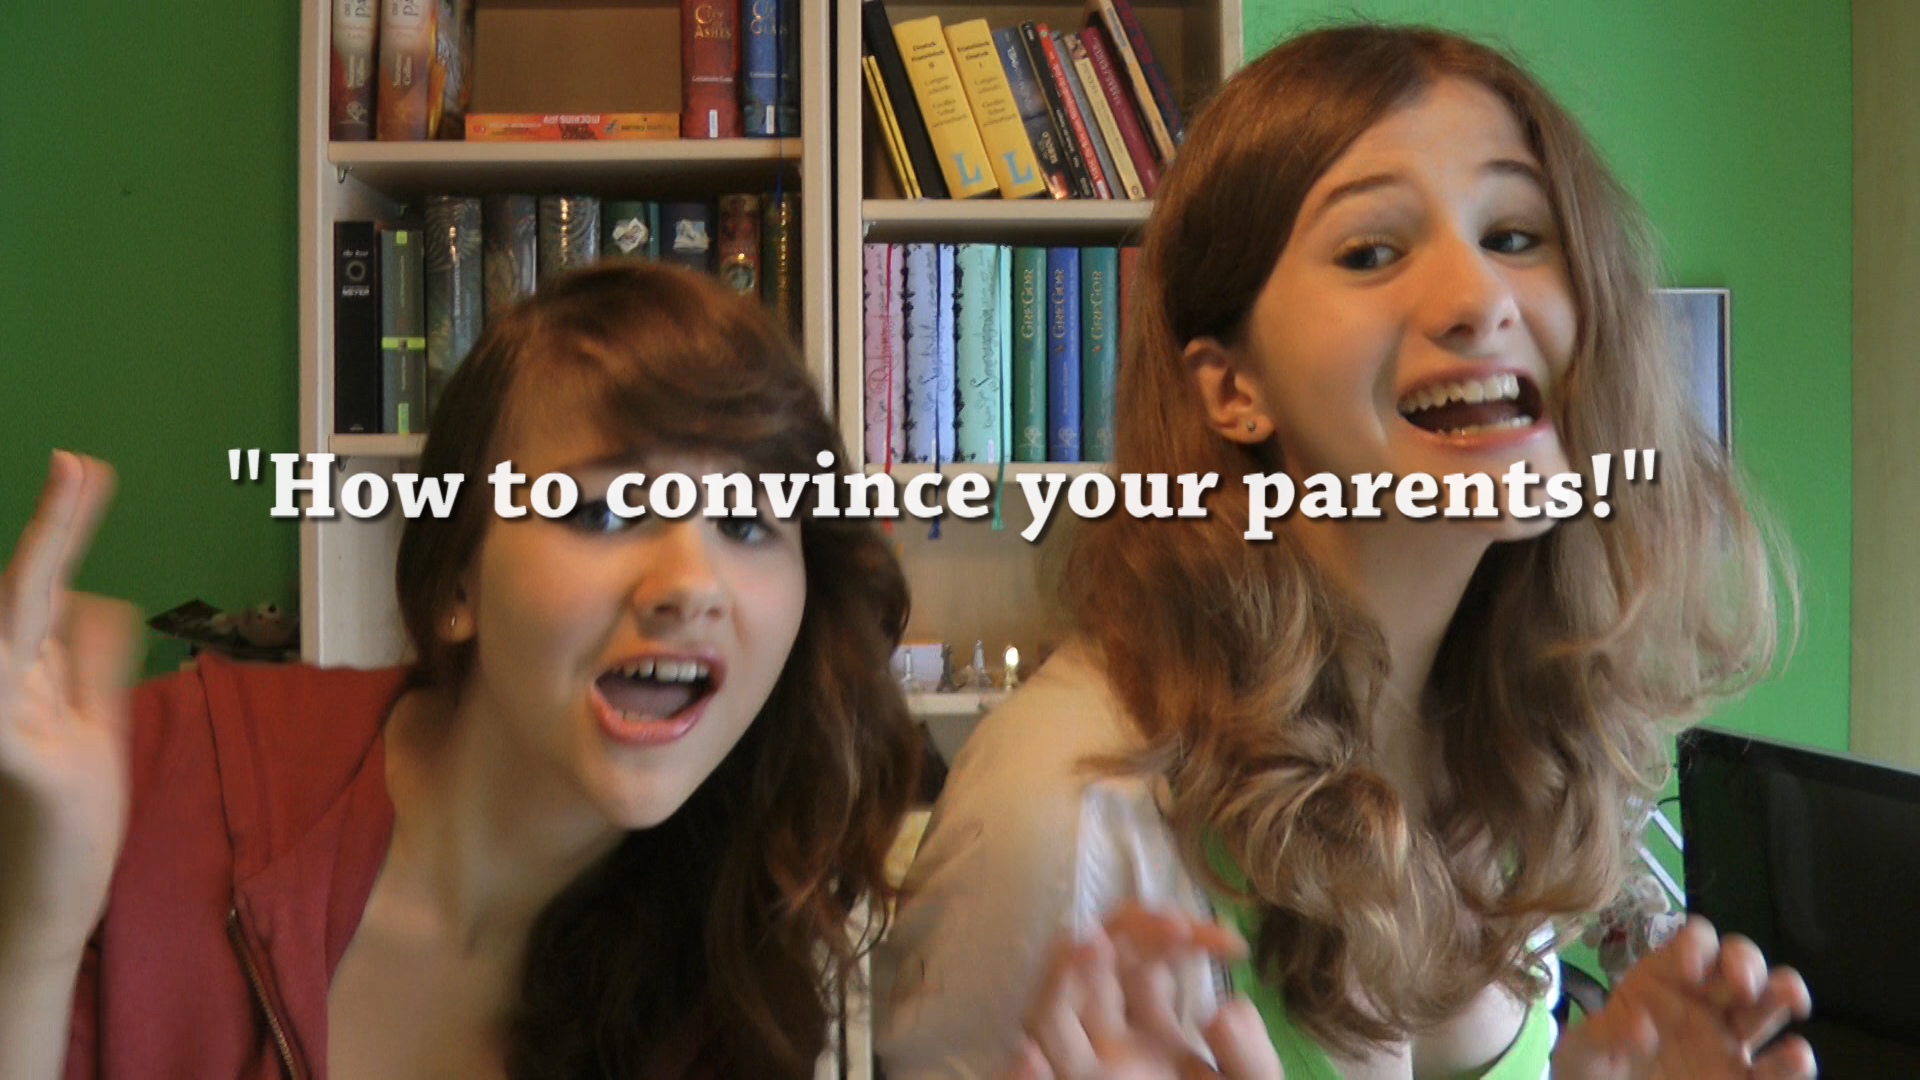 """#1: """"How to convince your parents!"""""""